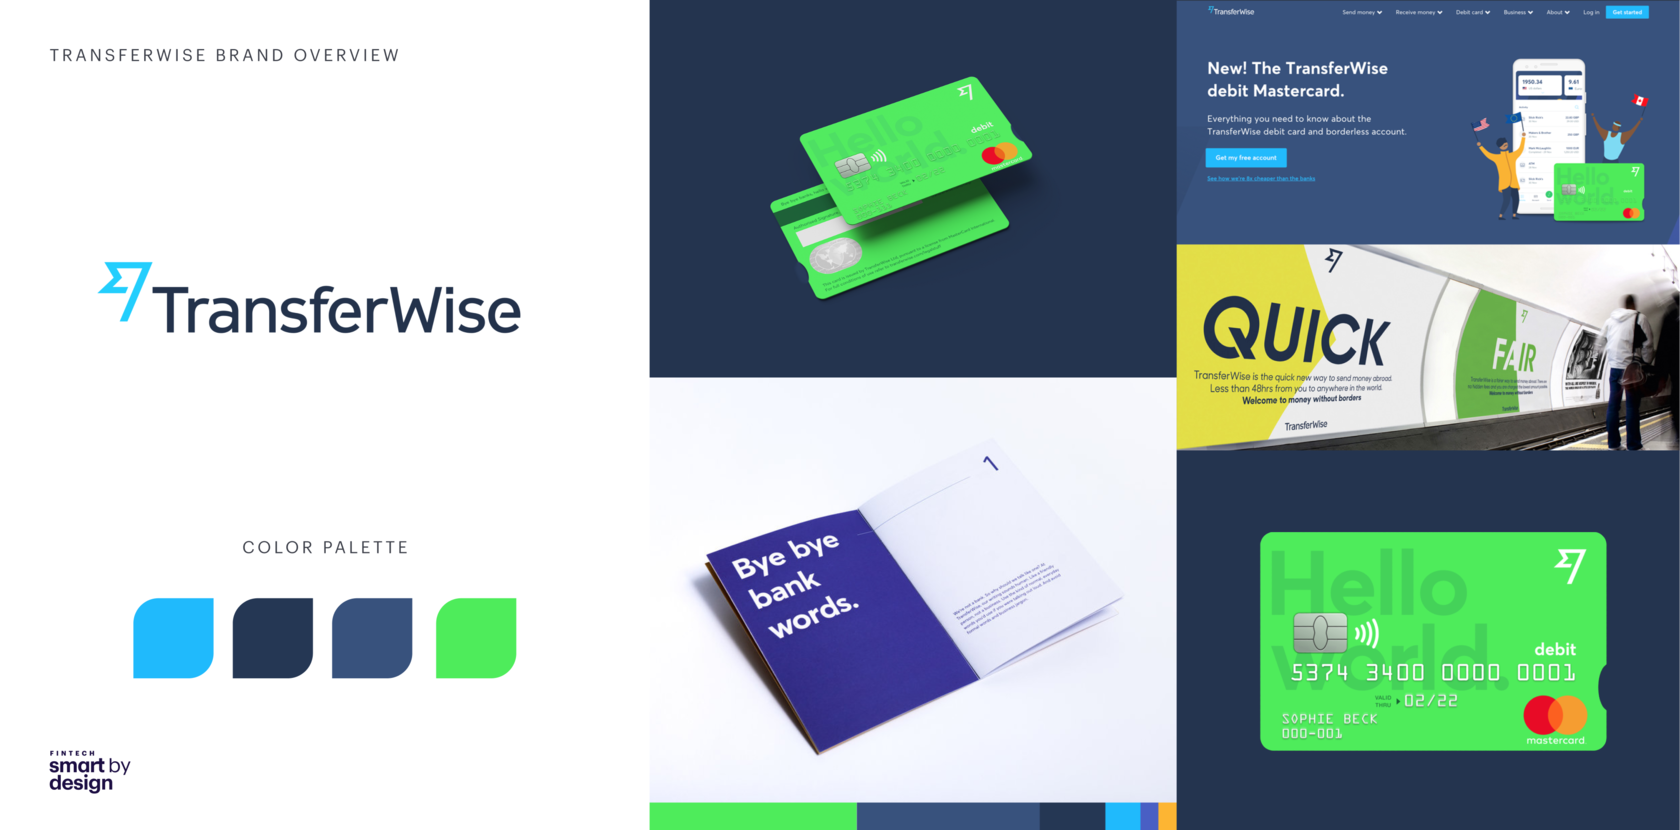 TransferWise branding overview